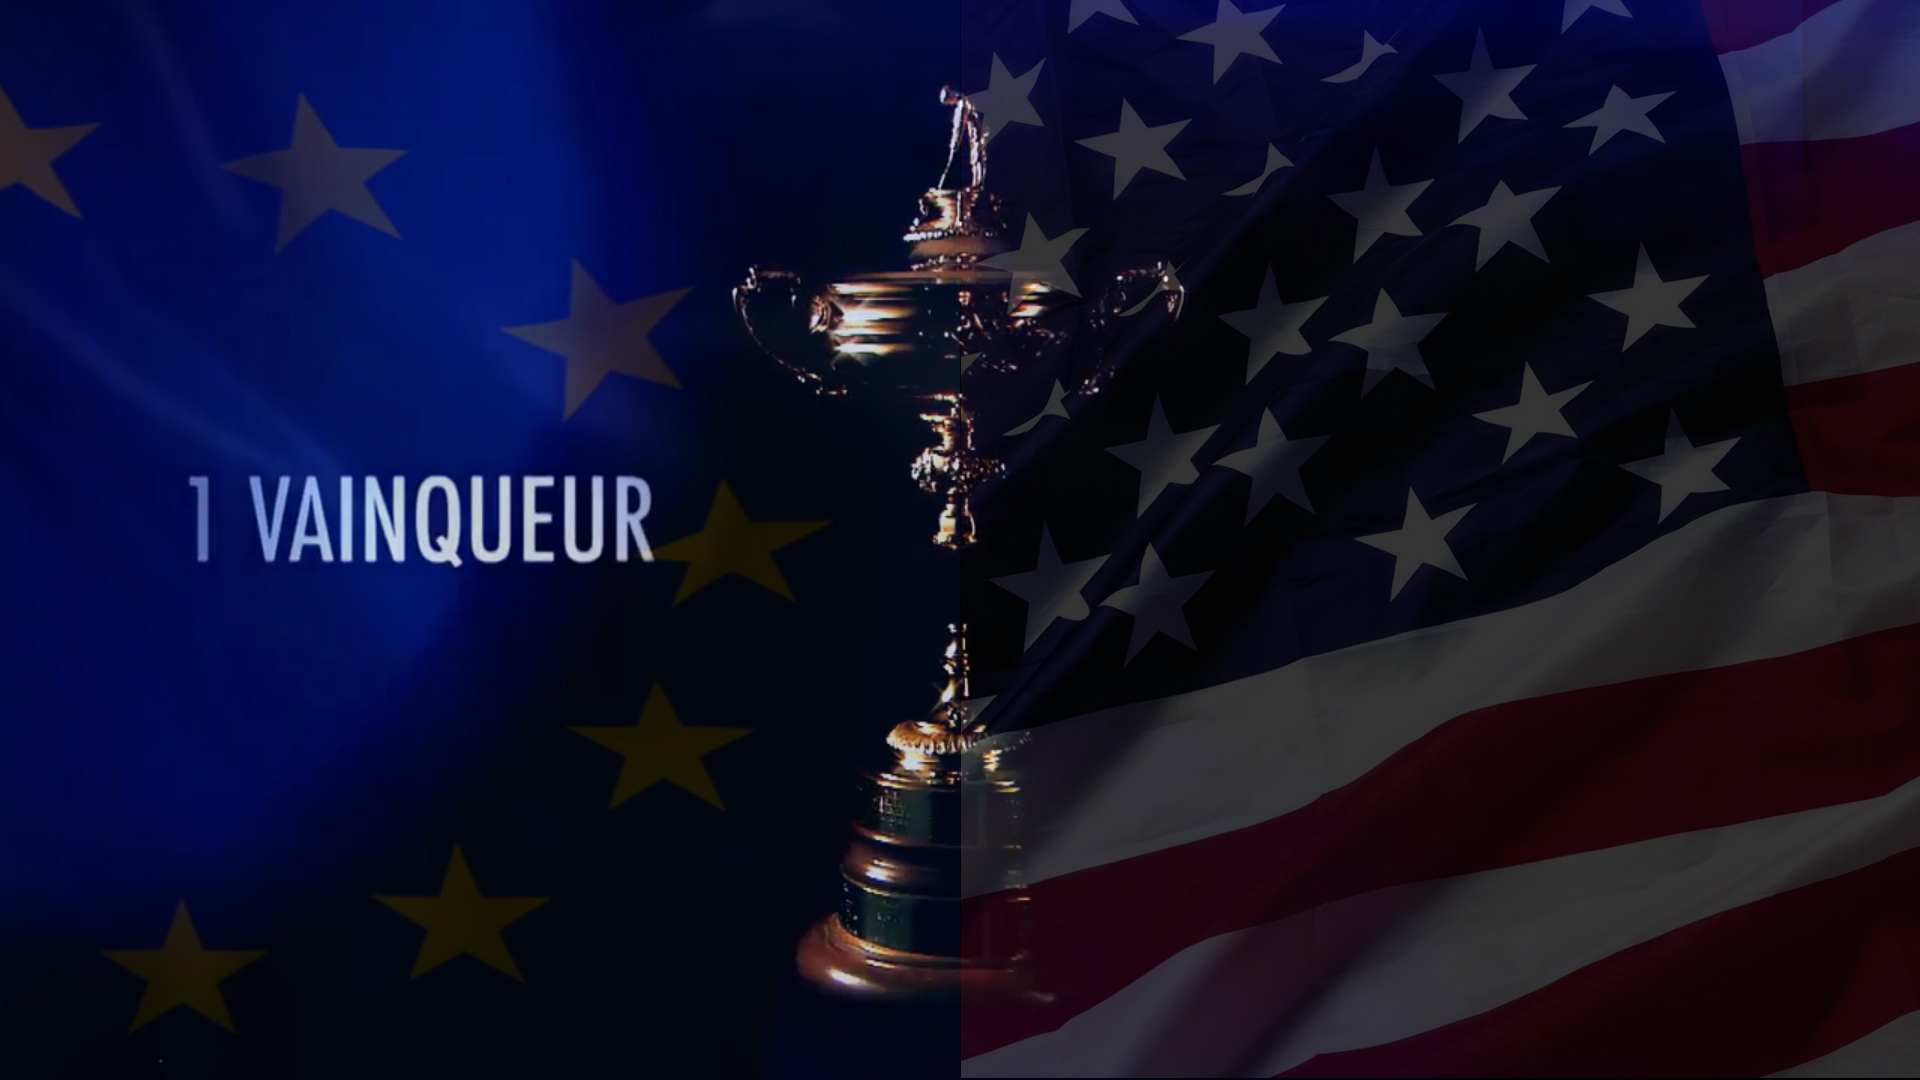 Ryder Cup France 2018 - Europe vs USA